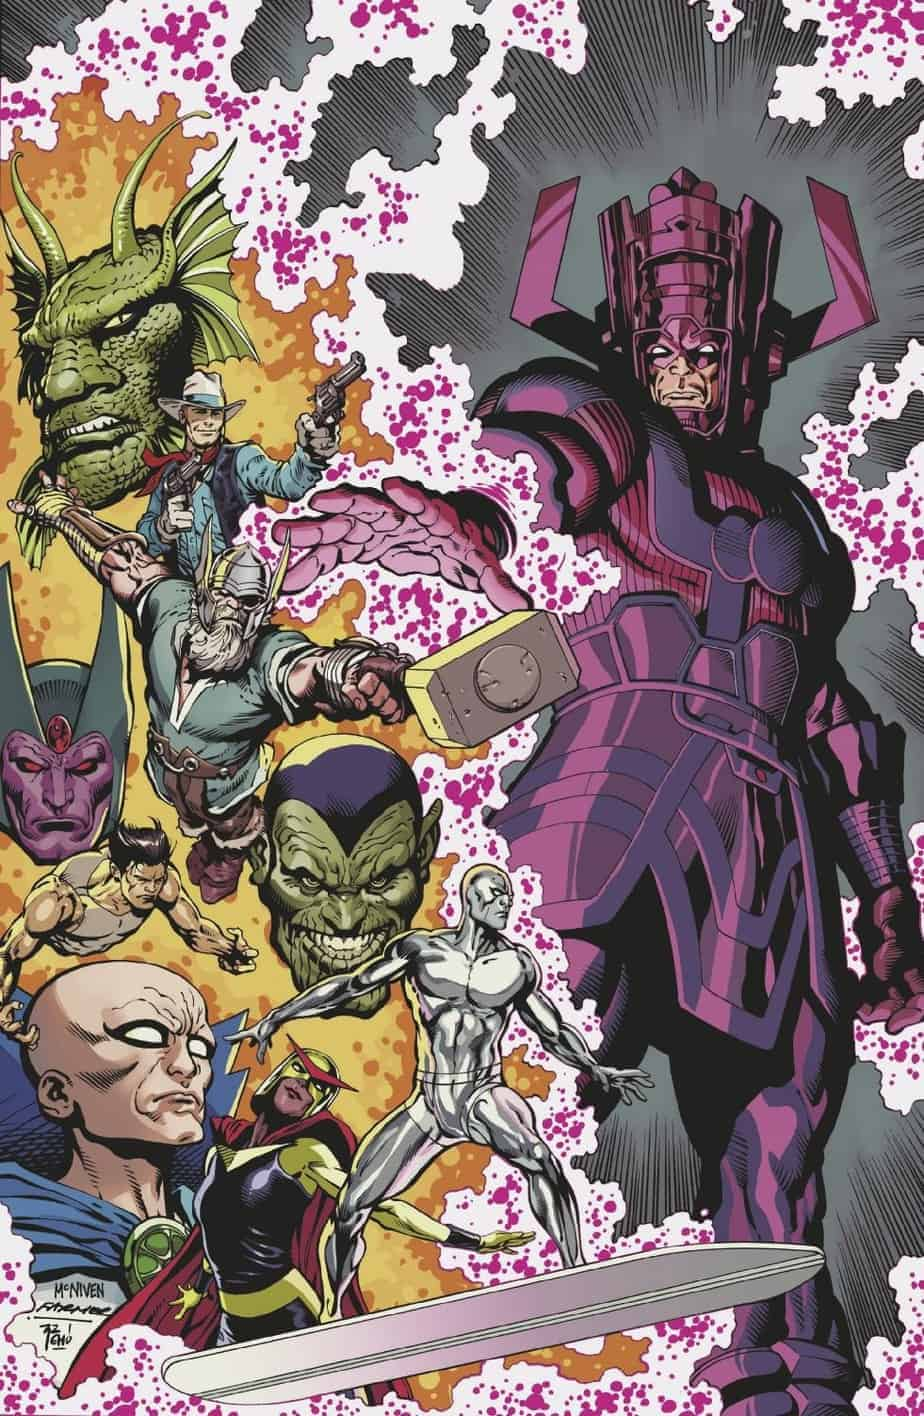 HISTORY OF THE MARVEL UNIVERSE #1 - Cover F